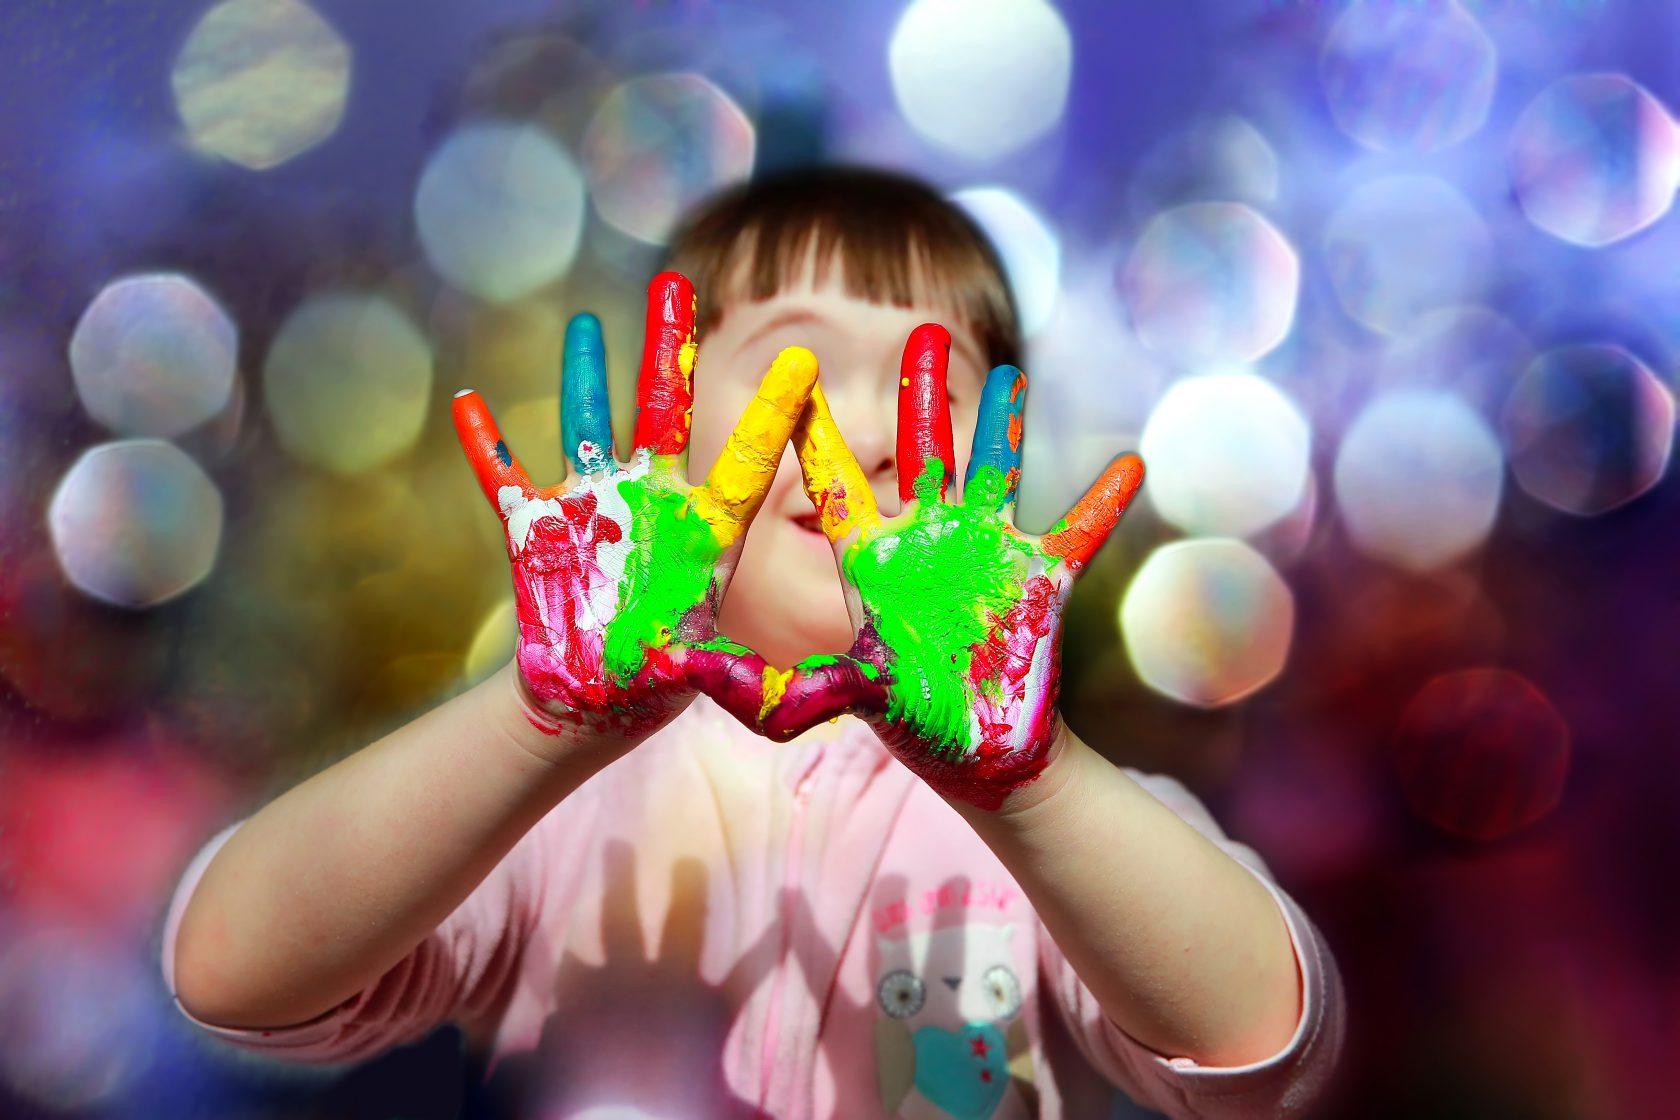 Cute little kid with painted hands.